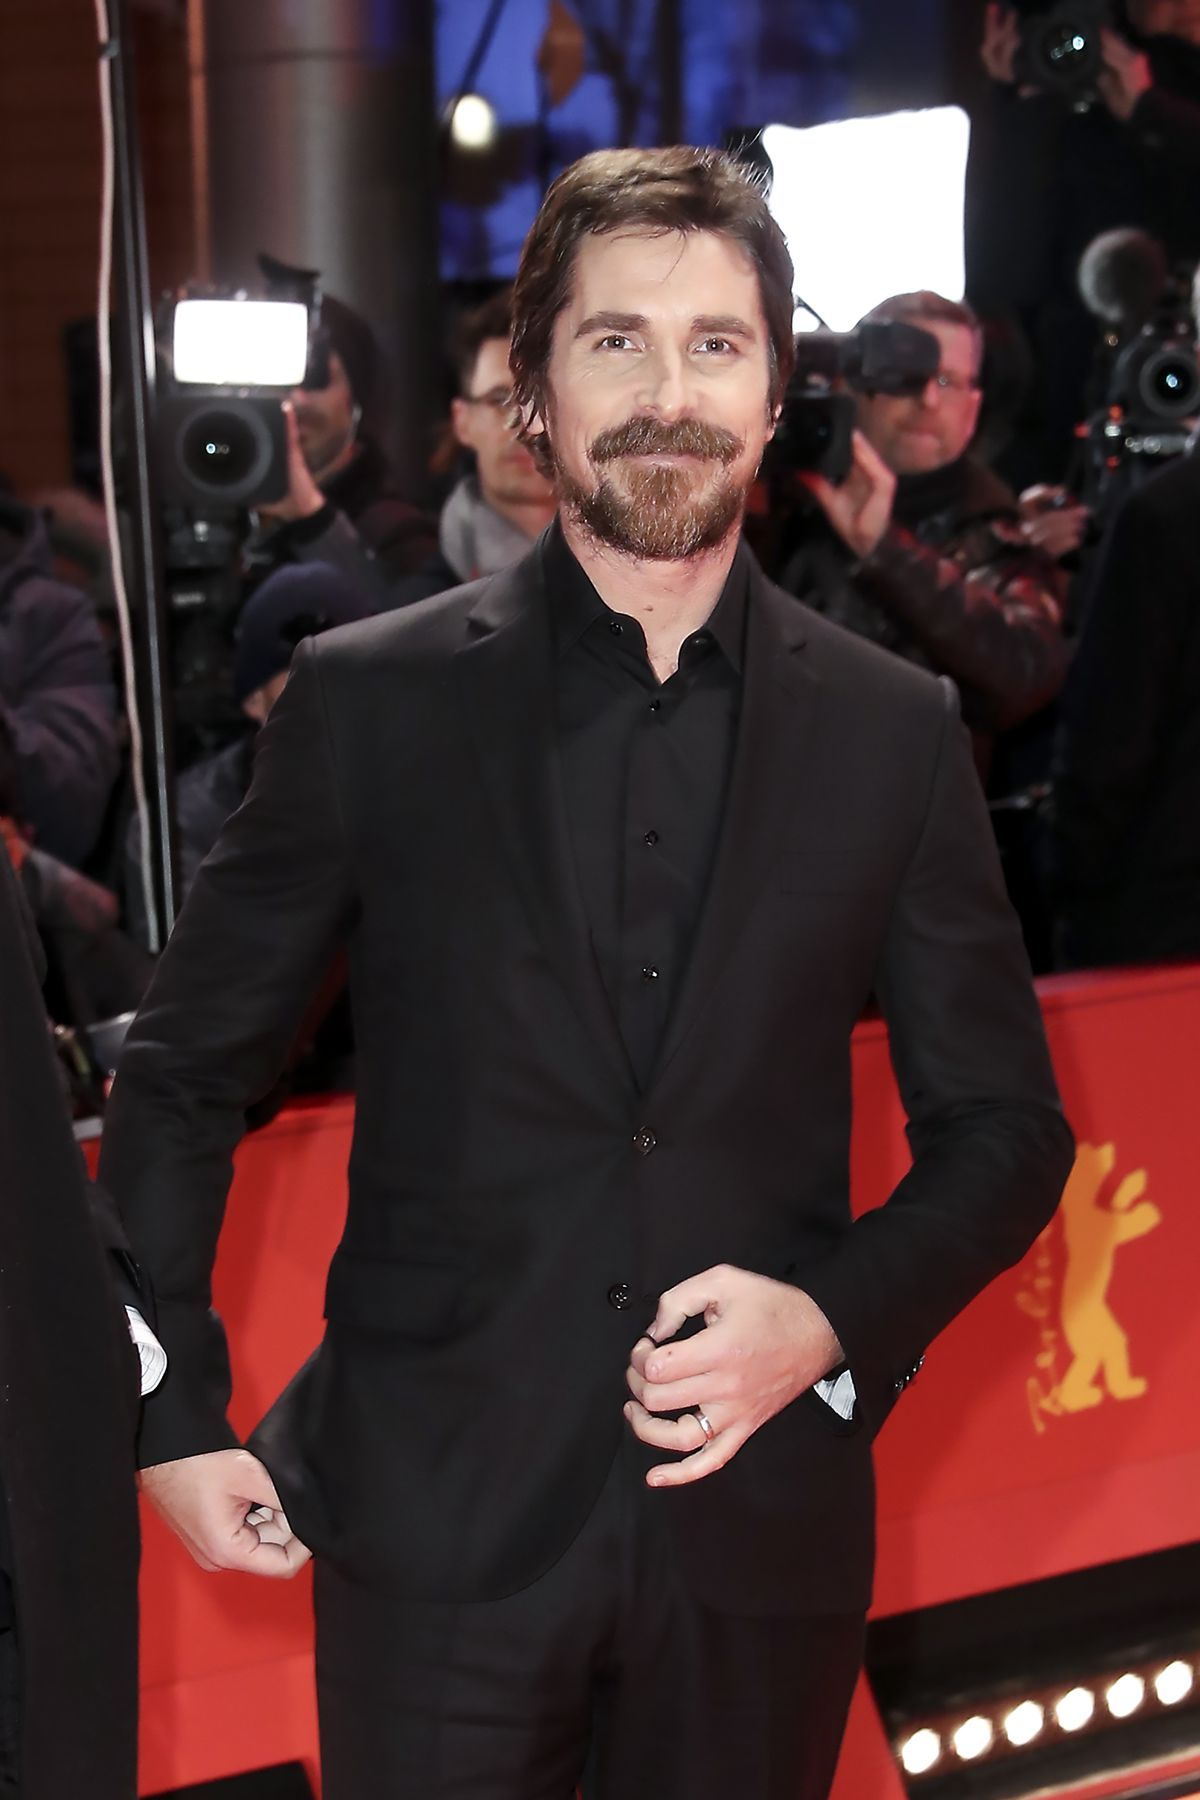 Christian Bale at the Vice premiere in Berlin, February 2019.